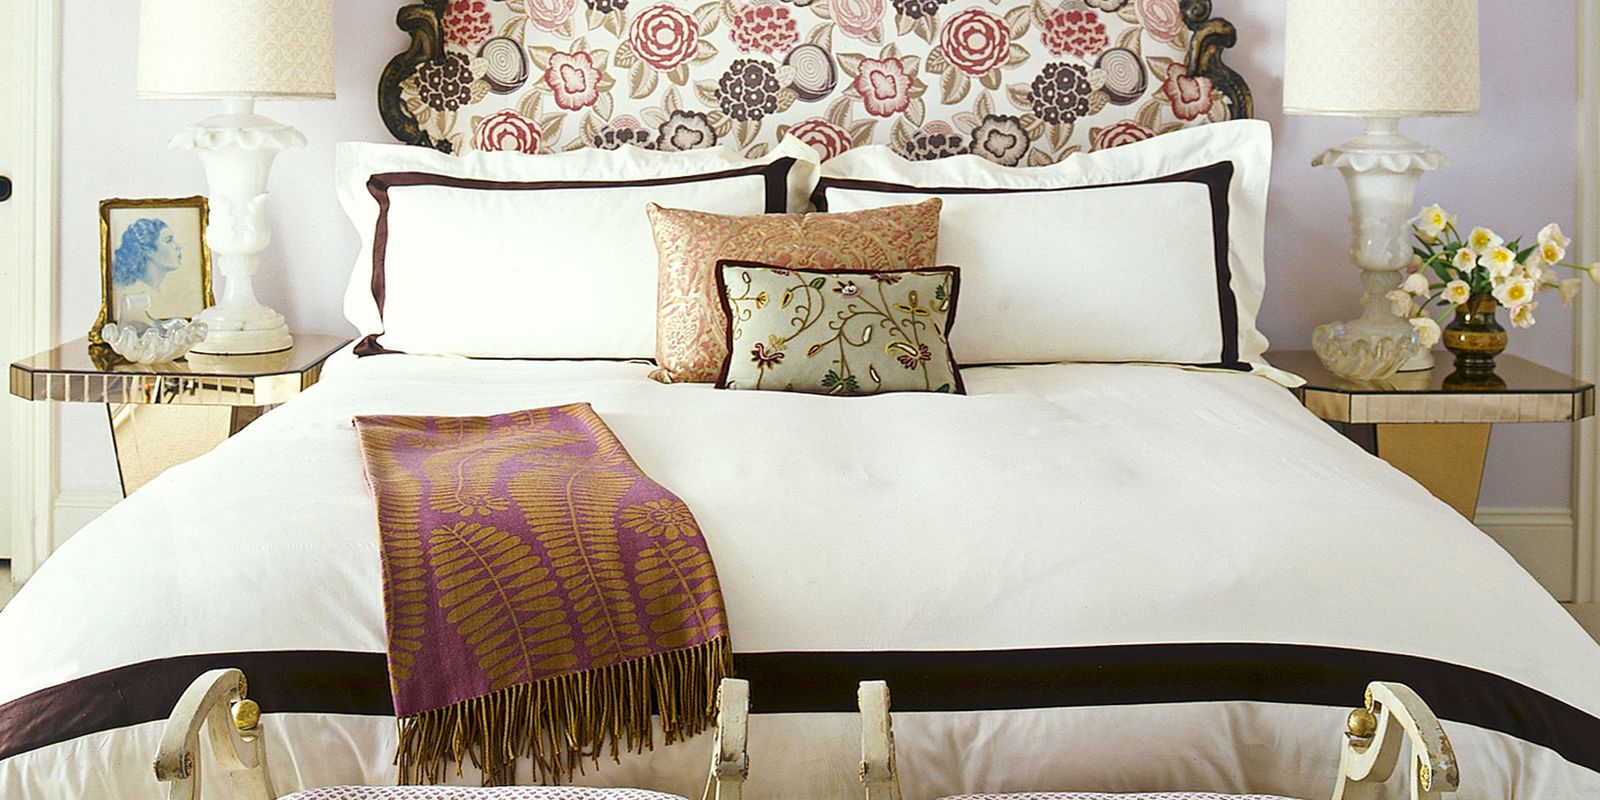 Romantic bedrooms ideas for sexy bedroom decor - Diy romantic bedroom ideas ...